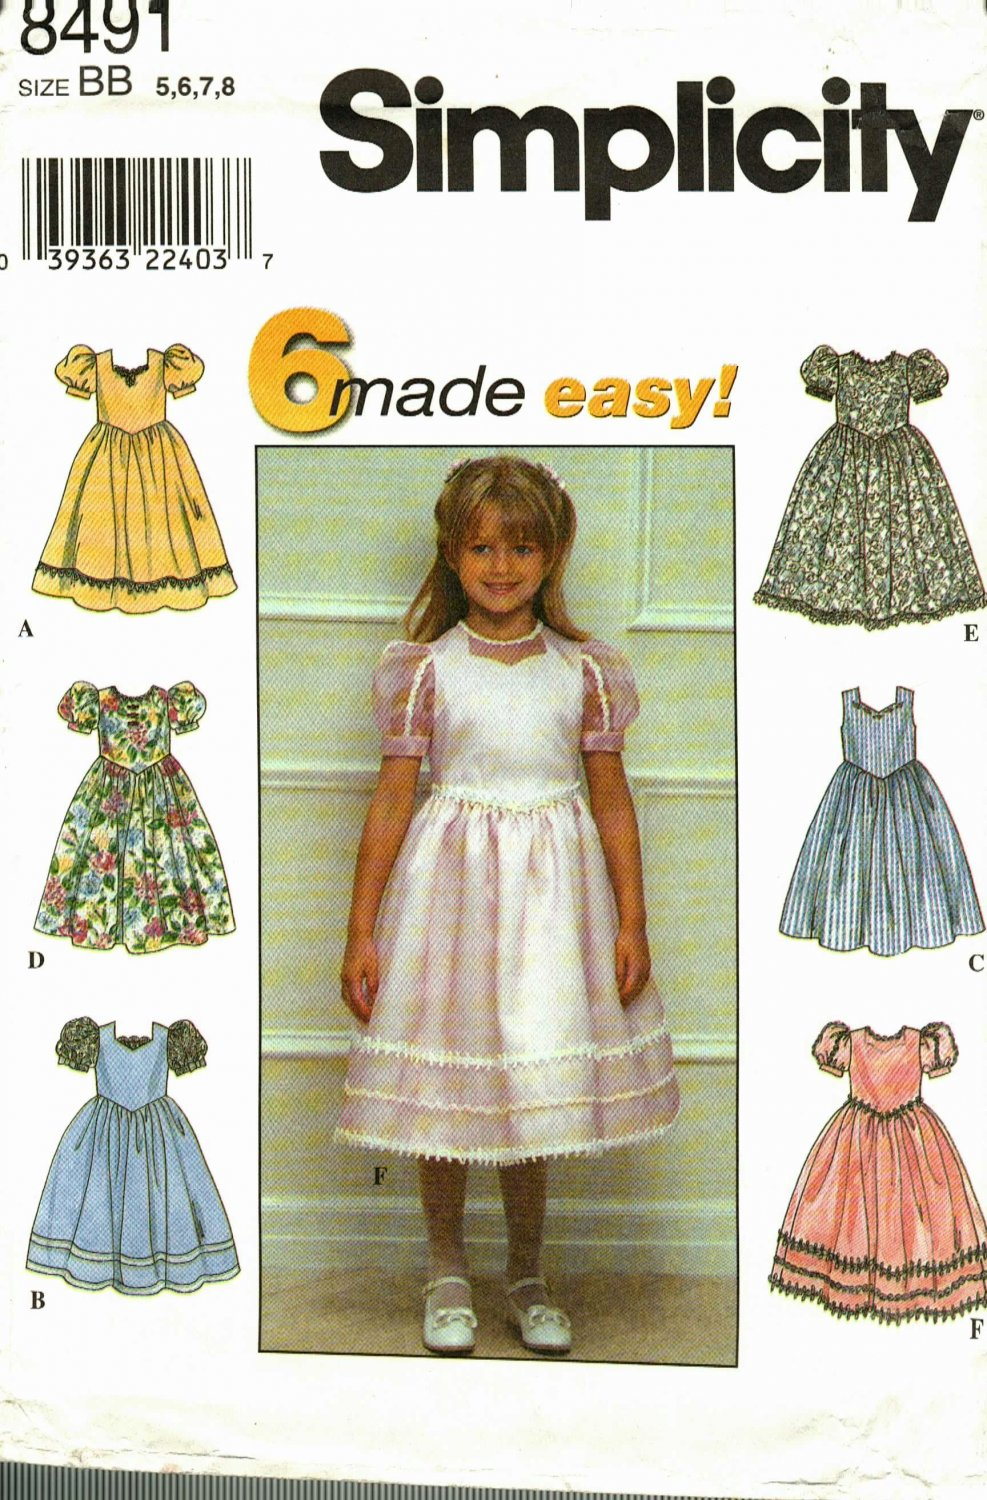 Simplicity 8491 Pattern uncut Girls 5 6 7 8 Party Dress Puff Sleeves Ruffles Lace